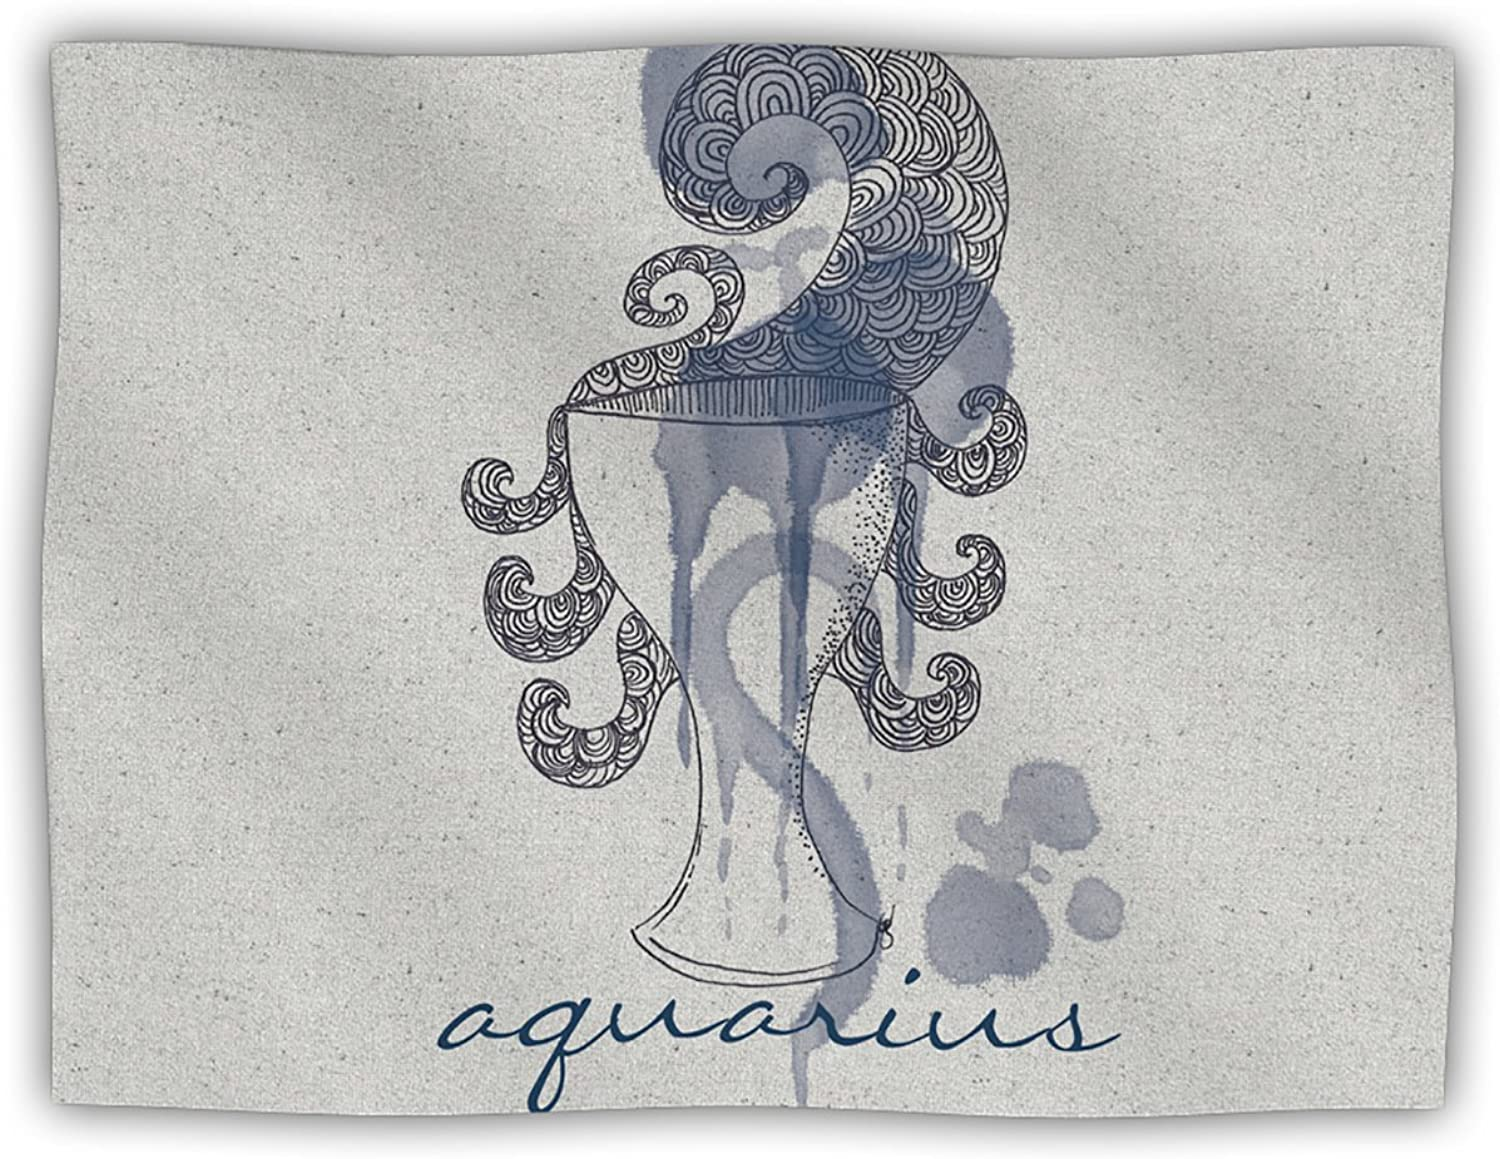 Kess InHouse Belinda Gillies  Aquarius  Pet Blanket, 40 by 30Inch